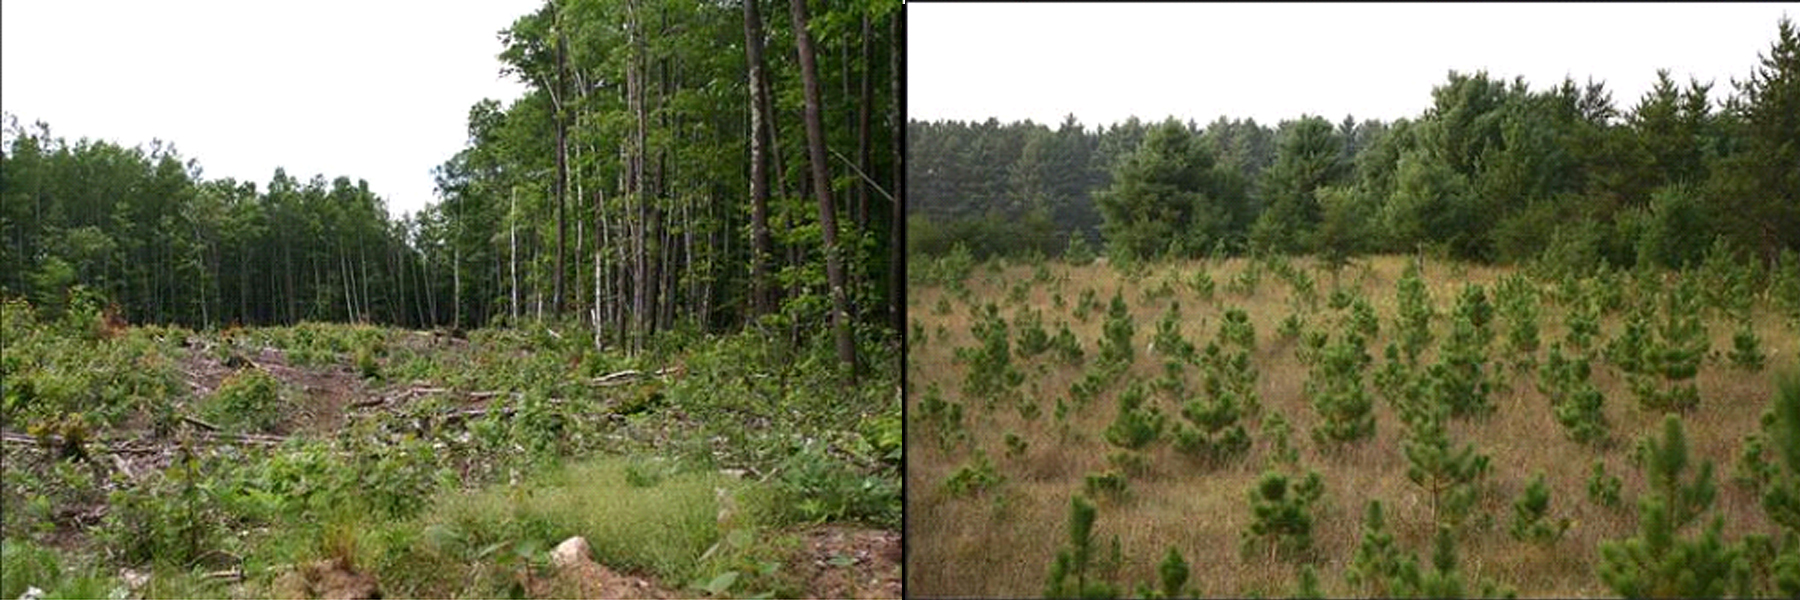 [Photograph] Side by side photo of forest condition boundary showing difference over time going from clear cut to new growth trees.